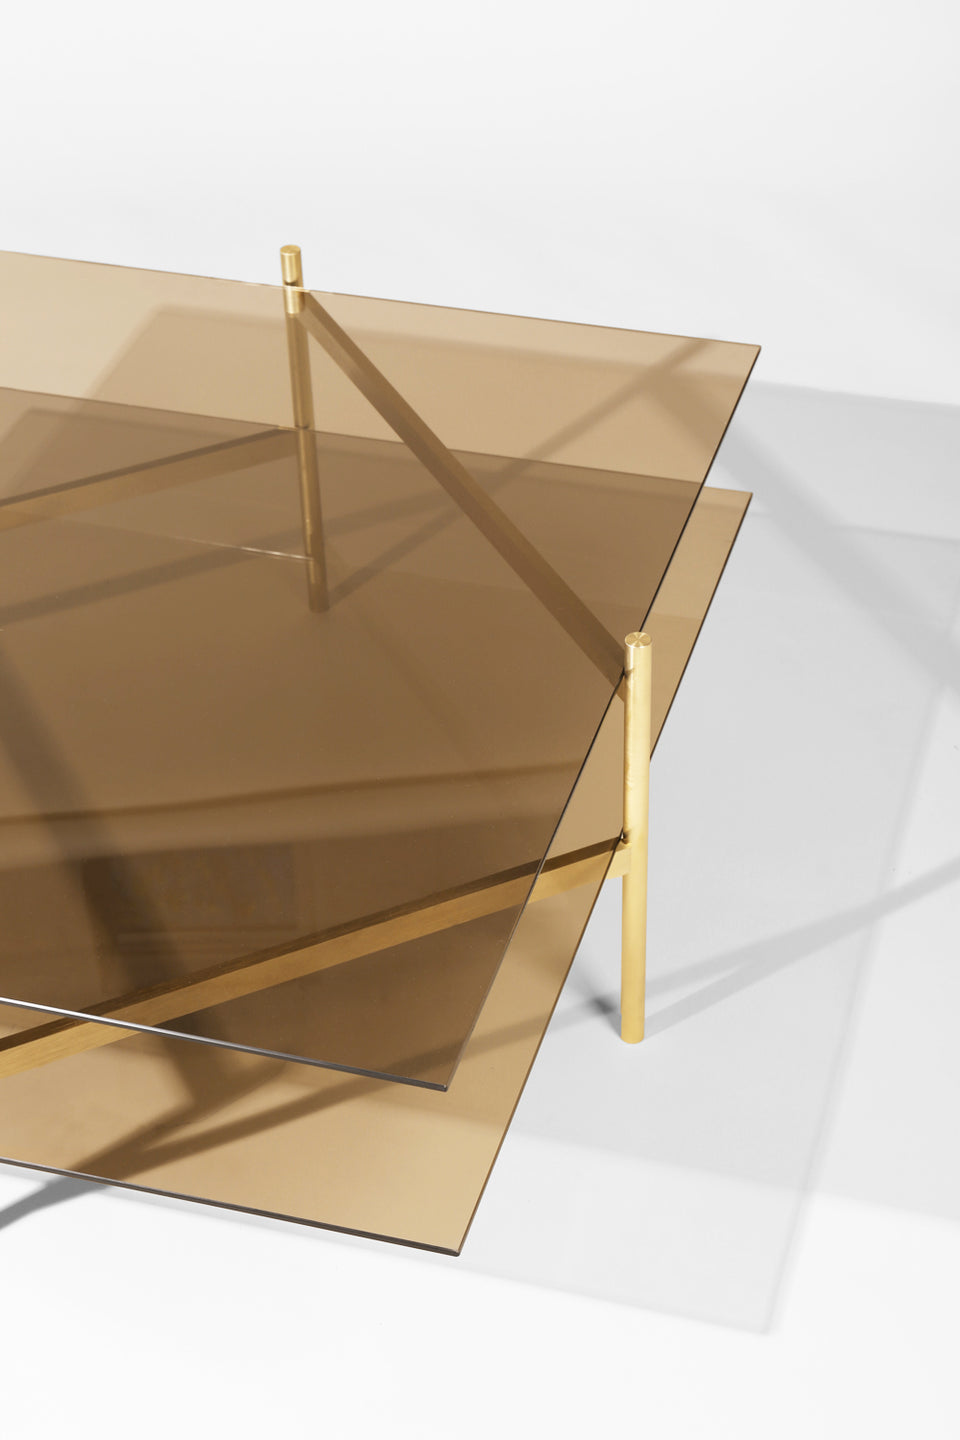 Duotone Diamond Coffee Table - Brass Frame / Bronze Glass / Bronze Glass